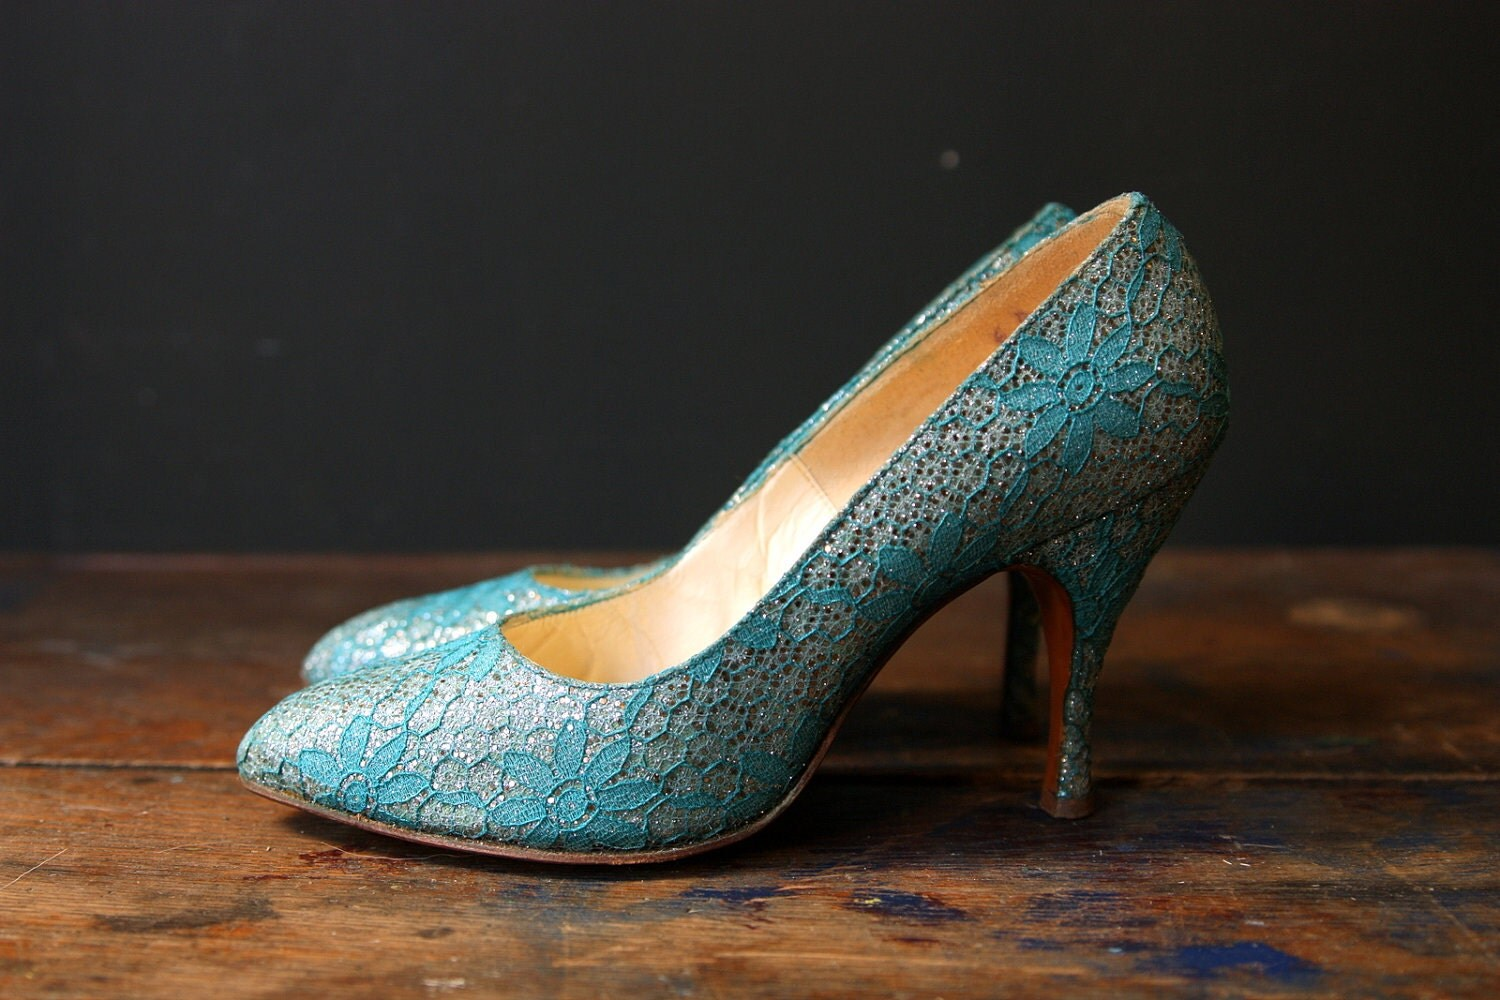 Turquoise Wedding Heels: 1950s Shoes / Turquoise Lace Silver Glitter Heels / Retro